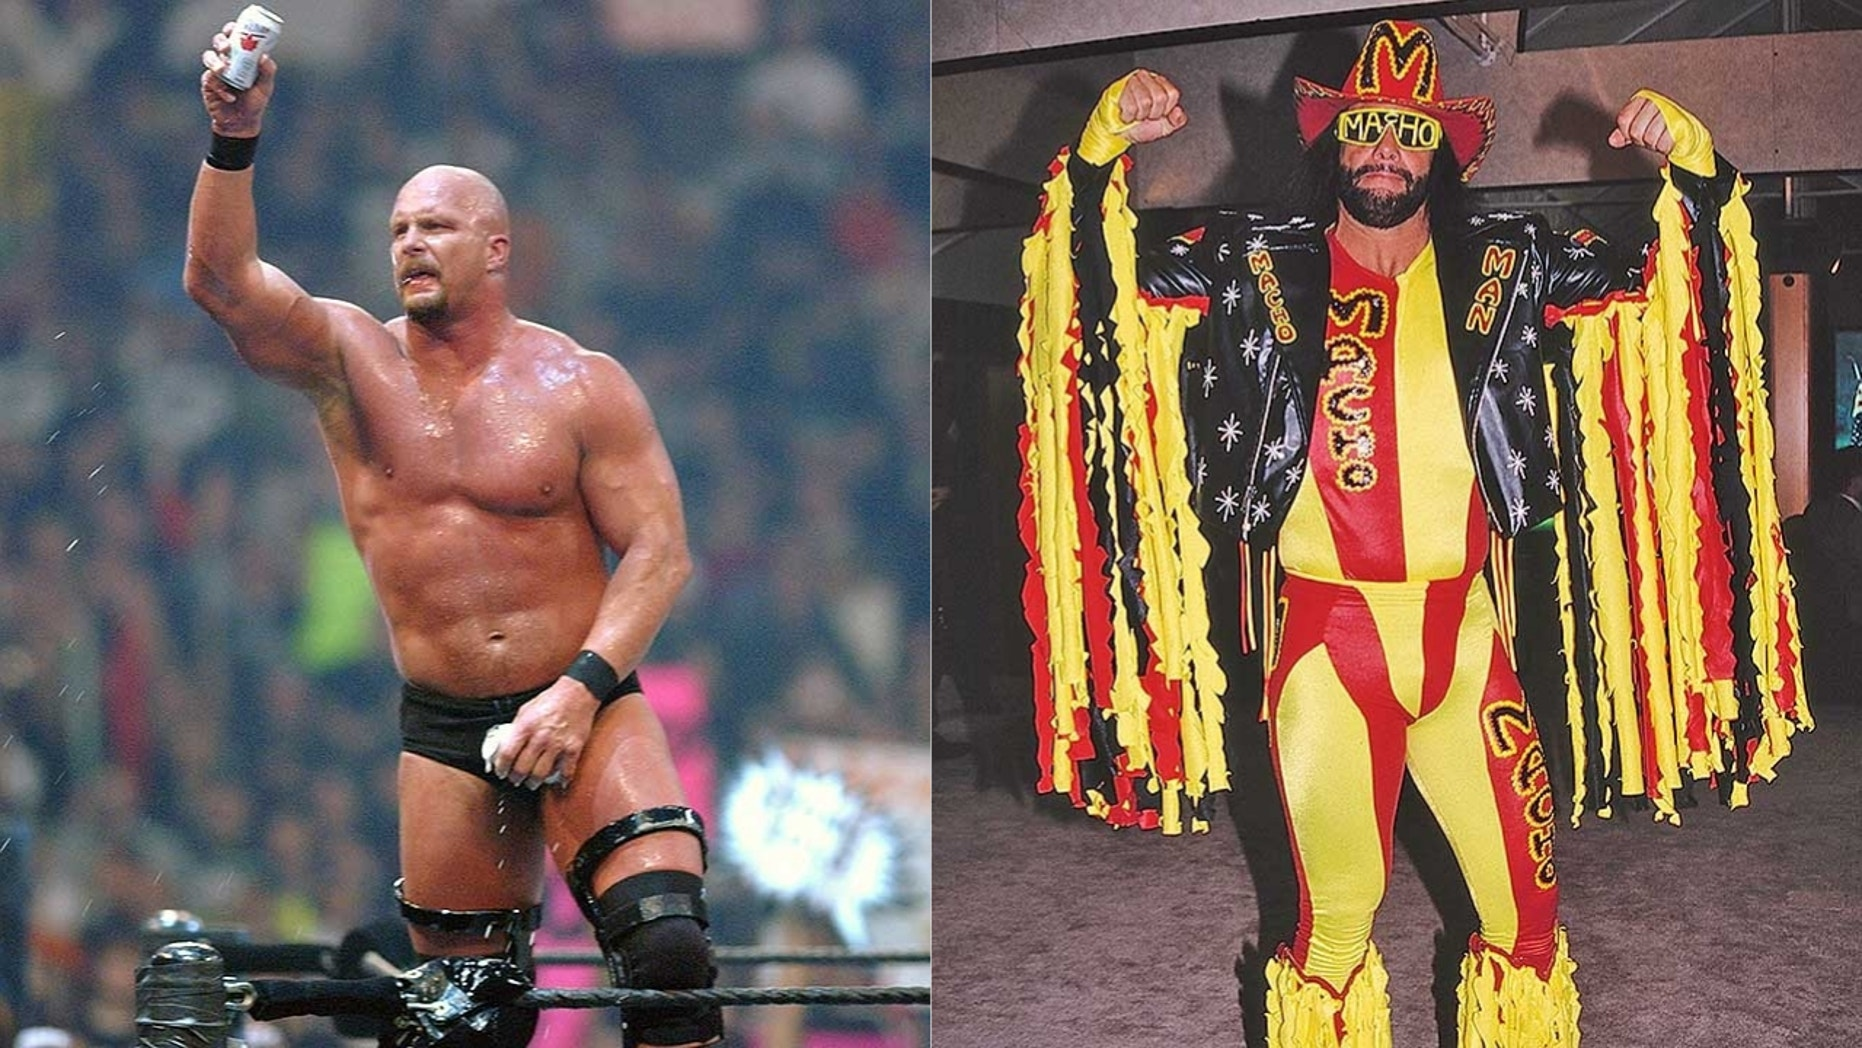 Stone Cold Steve Austin and Macho Man Randy Savage will be two of five wrestlers featured in documentaries, the result of a partnership between WWE and A&E Networks.